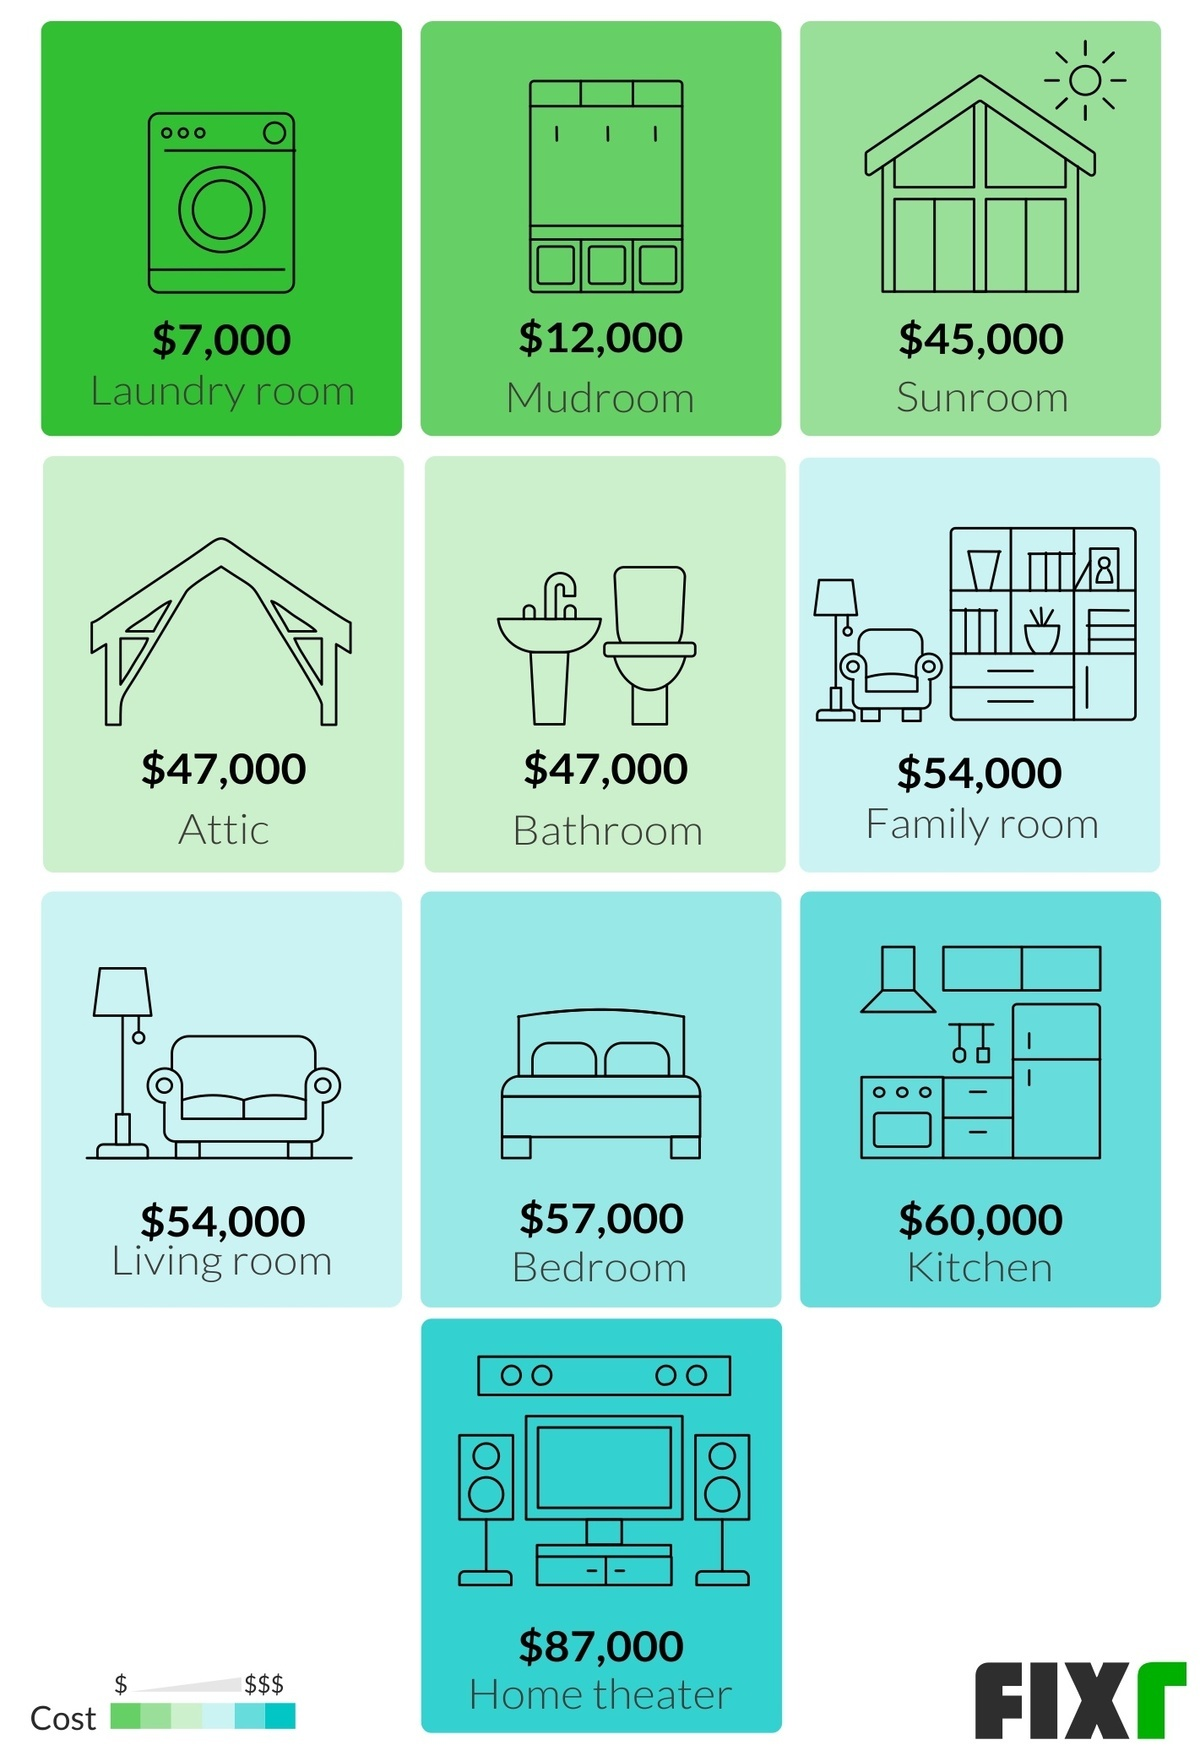 2020 House Addition Cost | Cost to Add Room